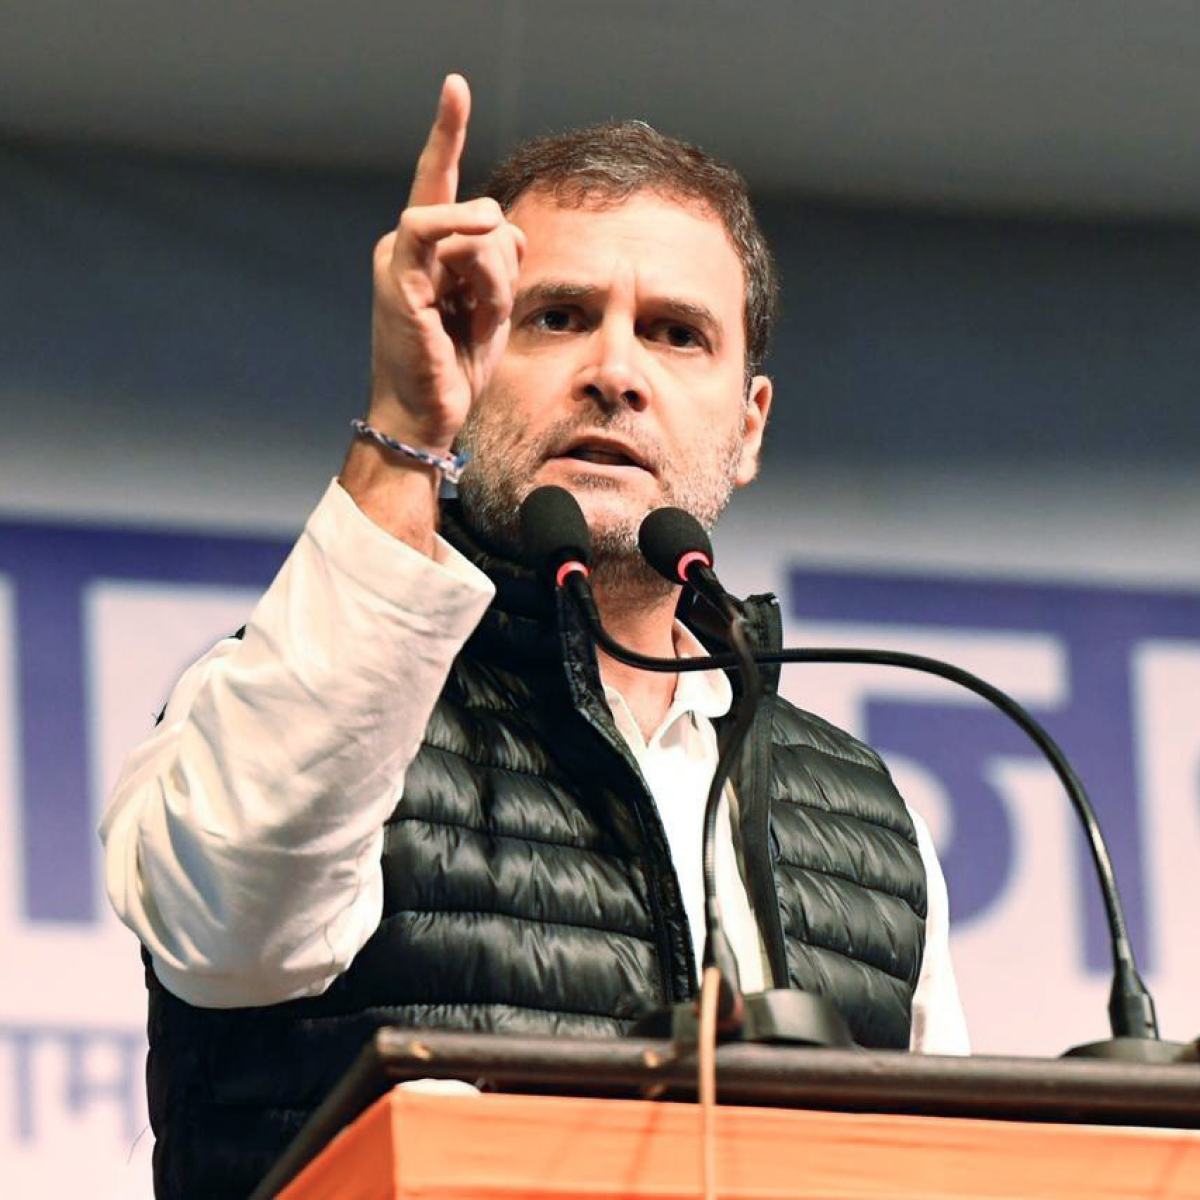 What happened that China took away India's land during Modi's rule: Rahul Gandhi asks govt